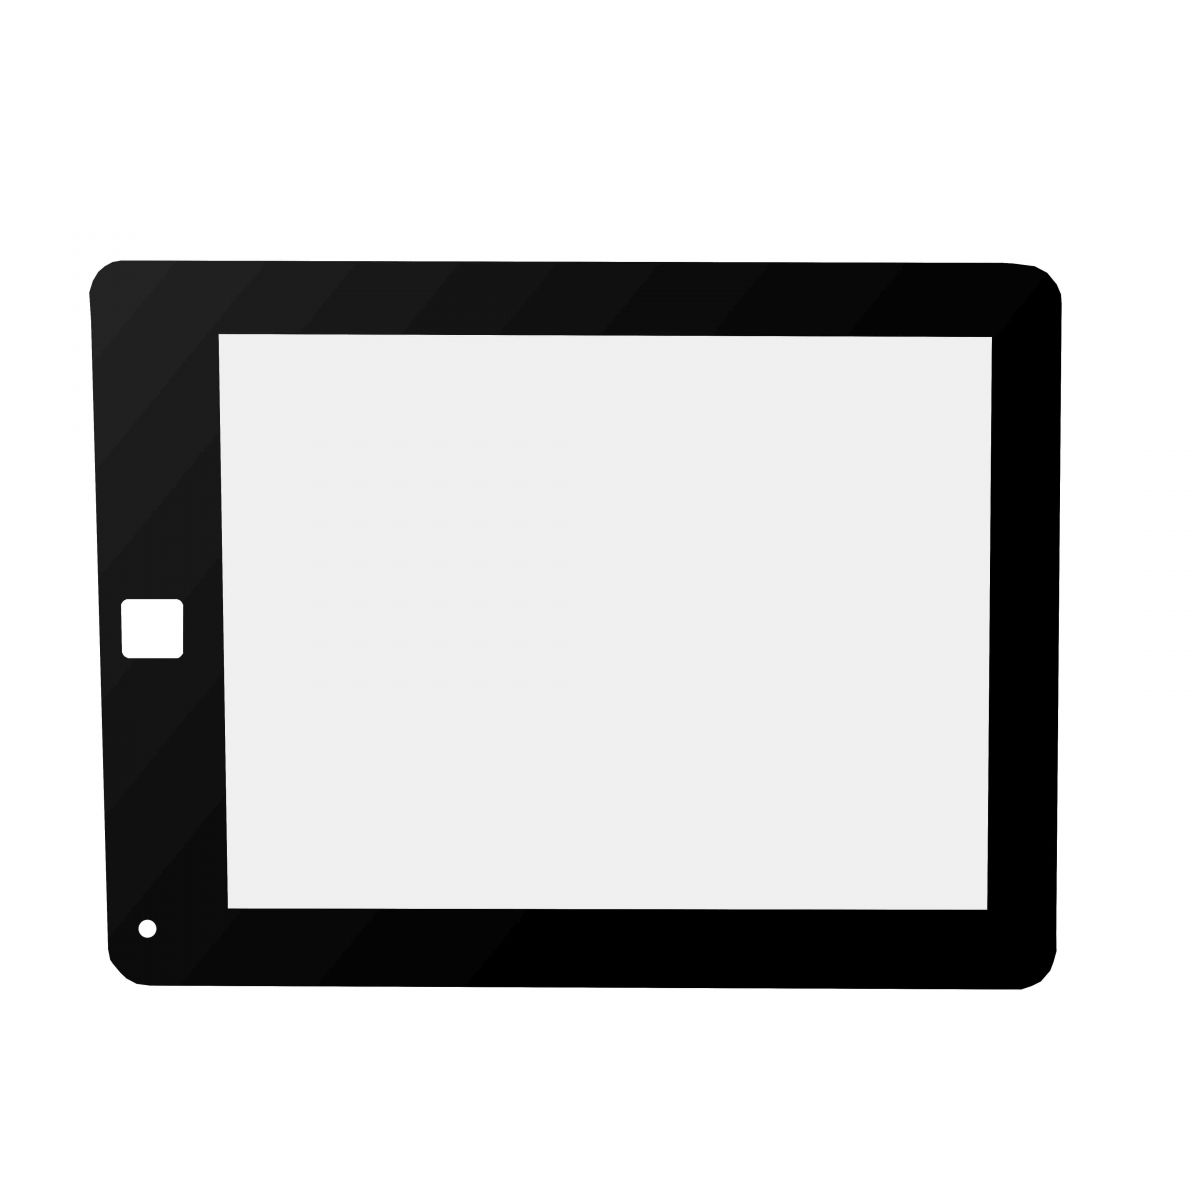 Membrana Plastica p/ Touch Tablet 8´ Home Quadrado